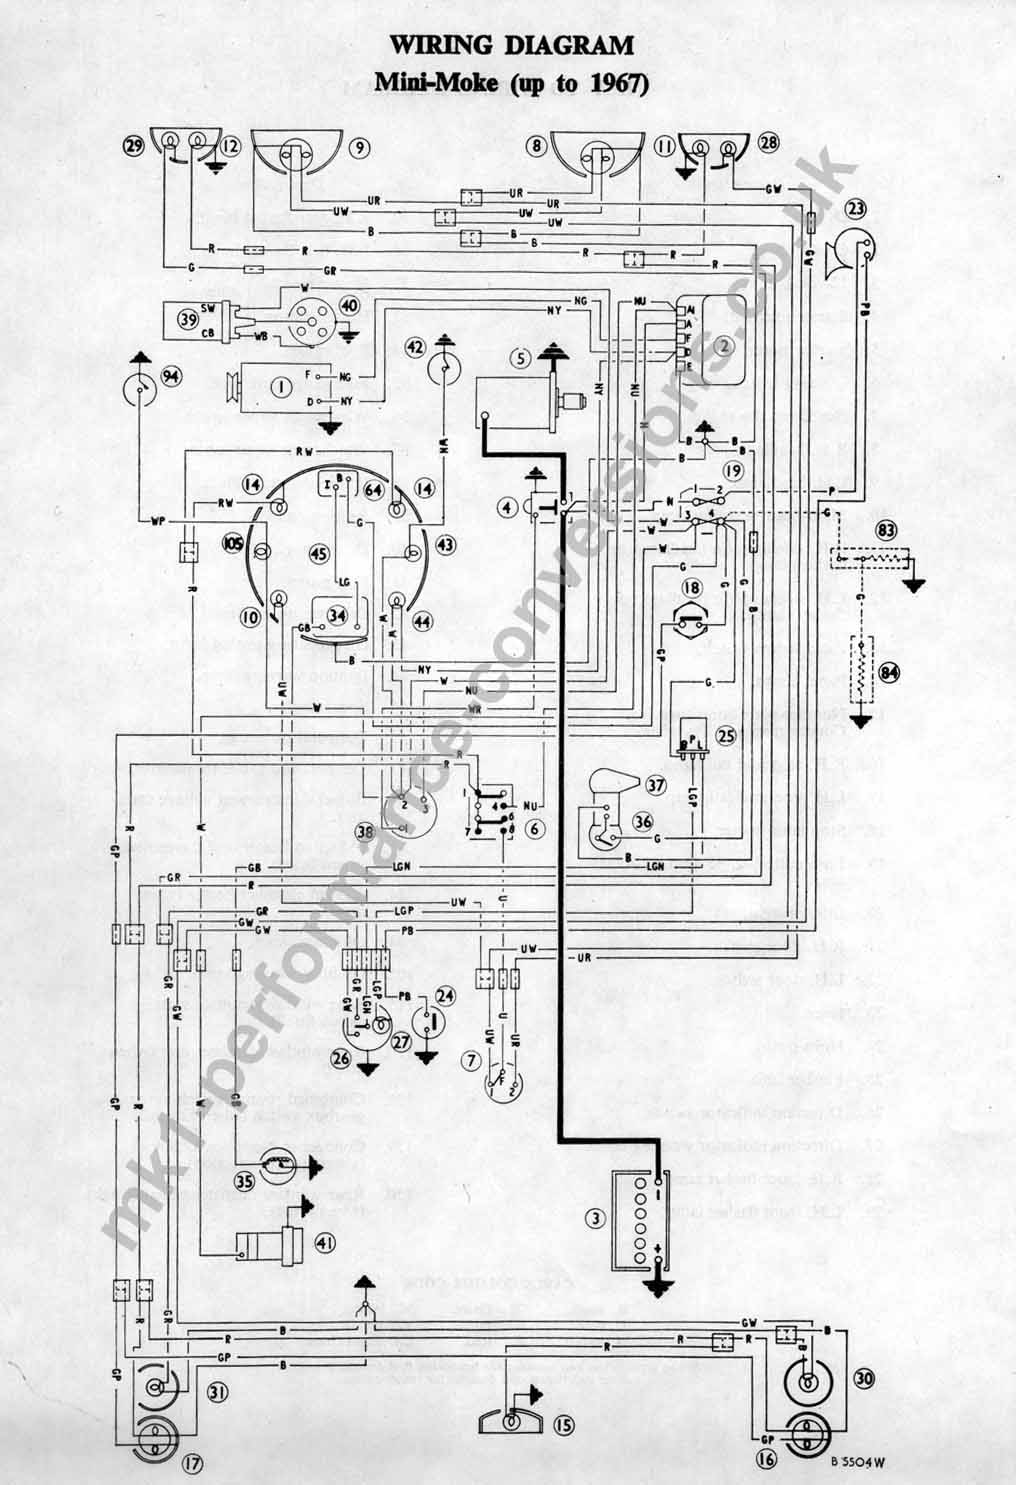 hight resolution of 1967 honda ct90 wiring diagram